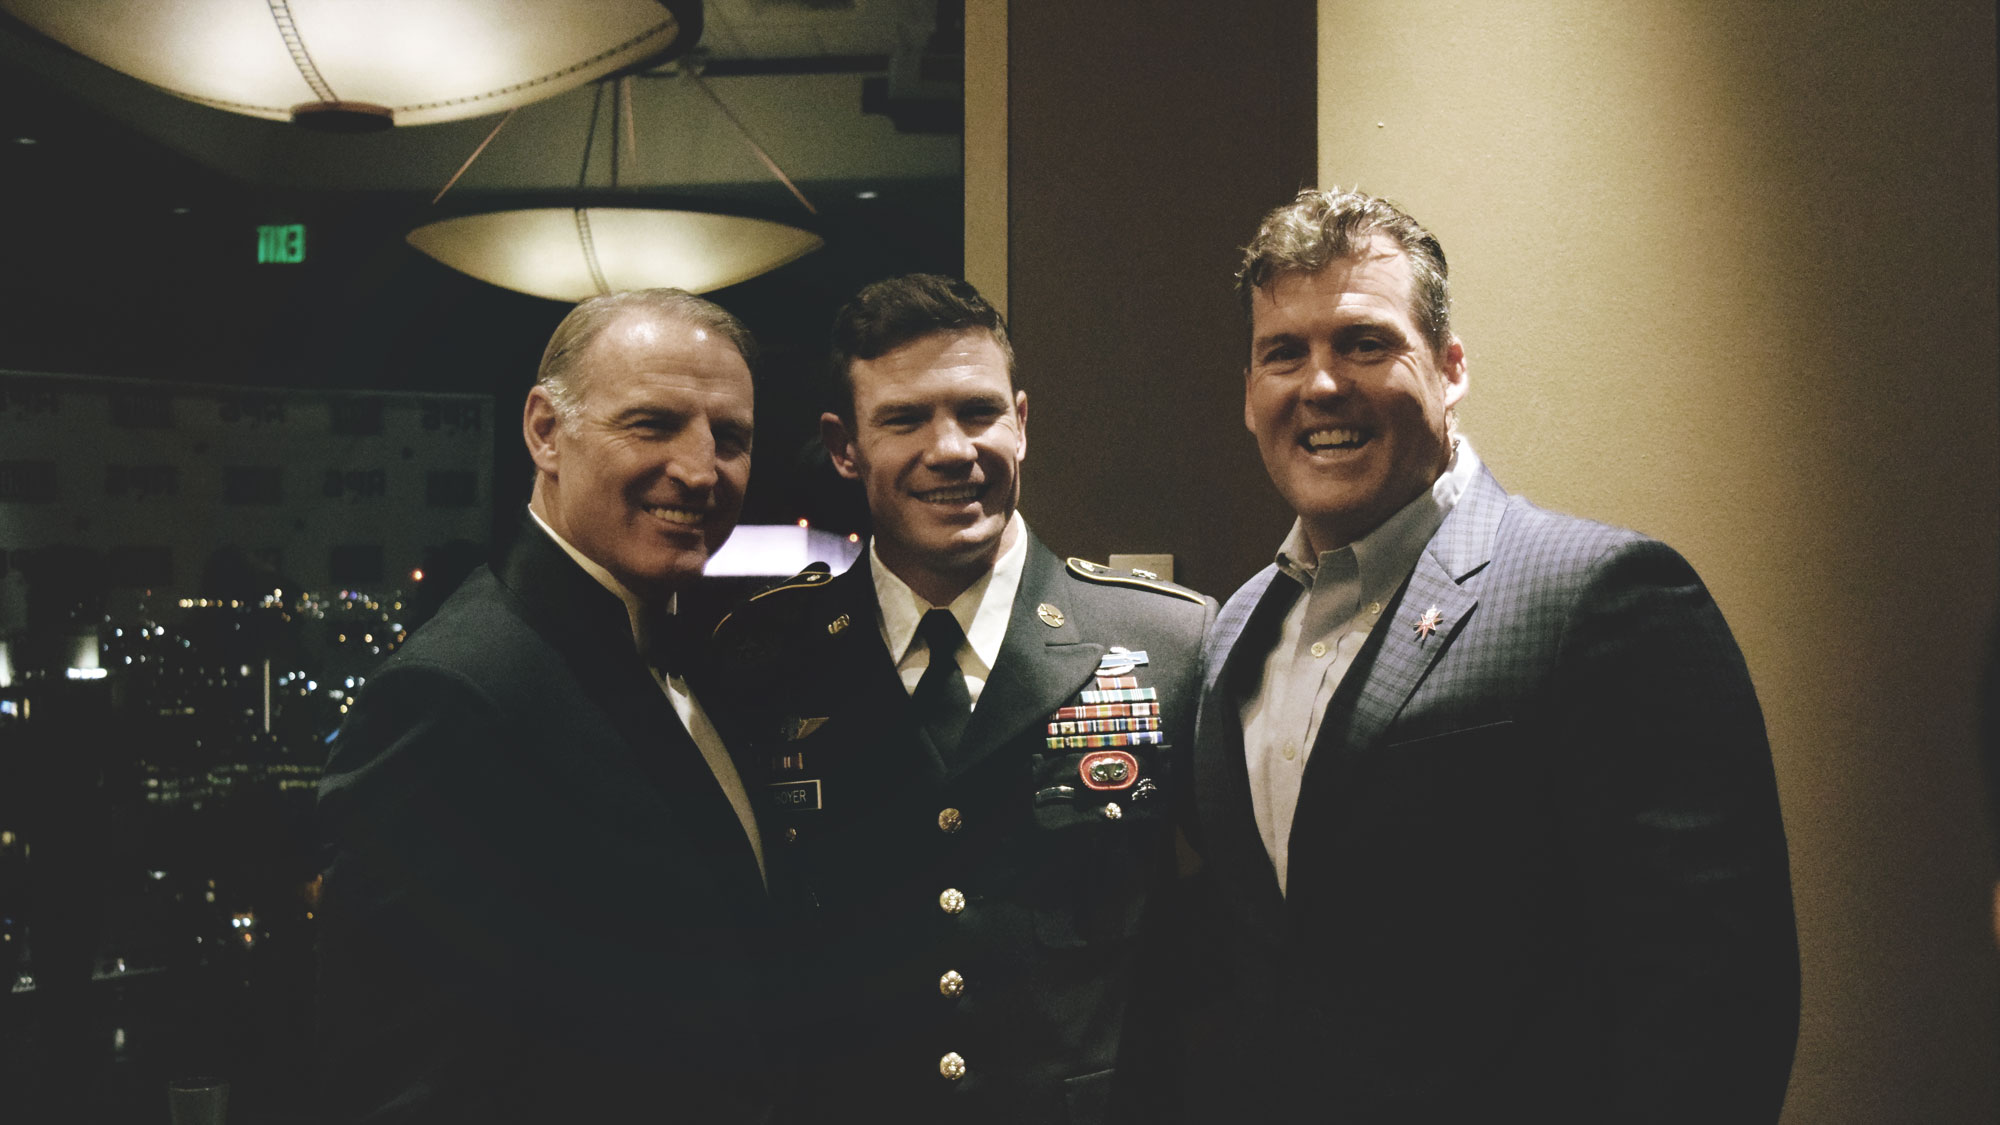 Army Ranger Veteran John Sercu, Green Beret Nate Boyer, and Air Force Security Specialist Veteran Rick Nelson at the Annual Rallypoint 6 Fundraiser